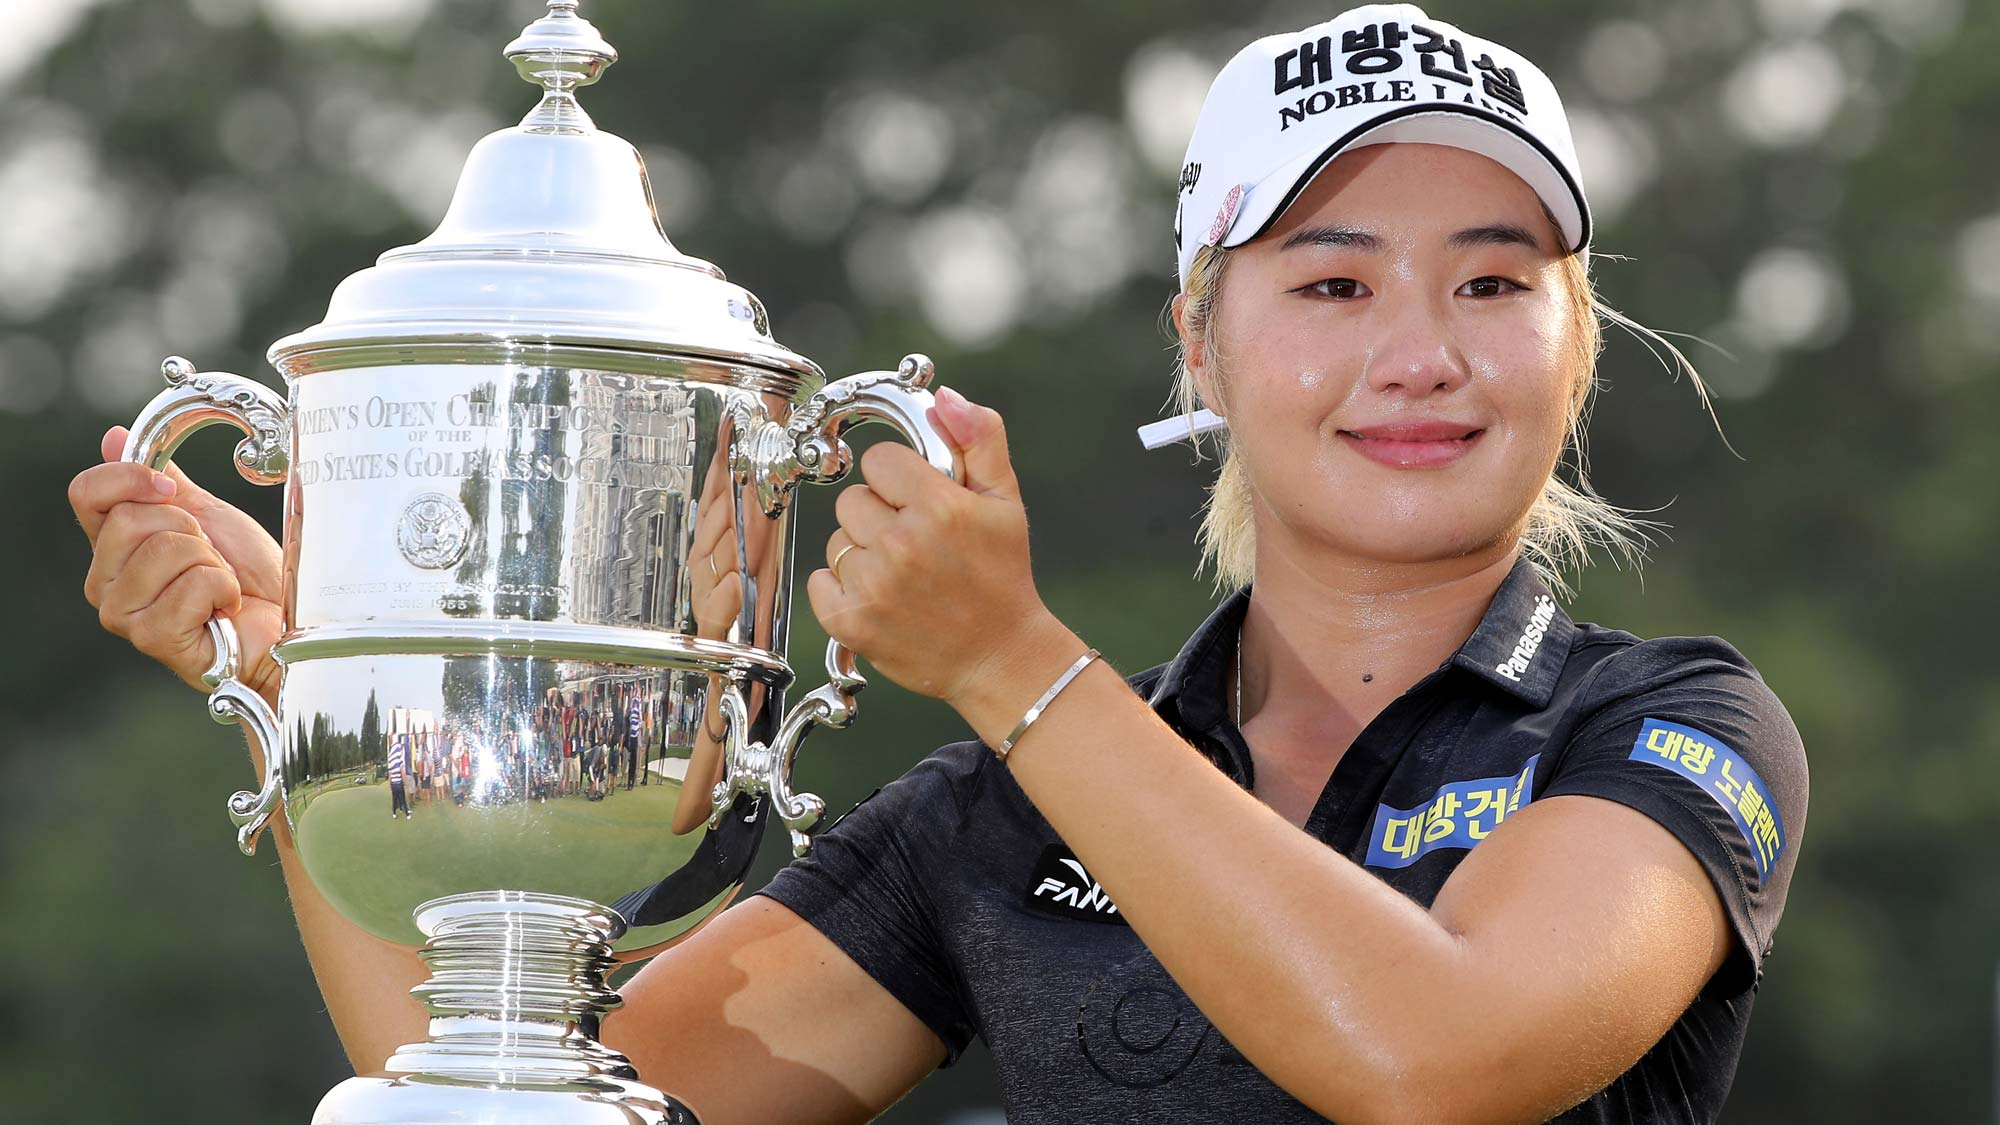 Jeongeun Lee6 has her #BagsPacked for the 2020 Diamond Resorts Tournament of Champions after her victory at the 2019 U.S. Women's Open